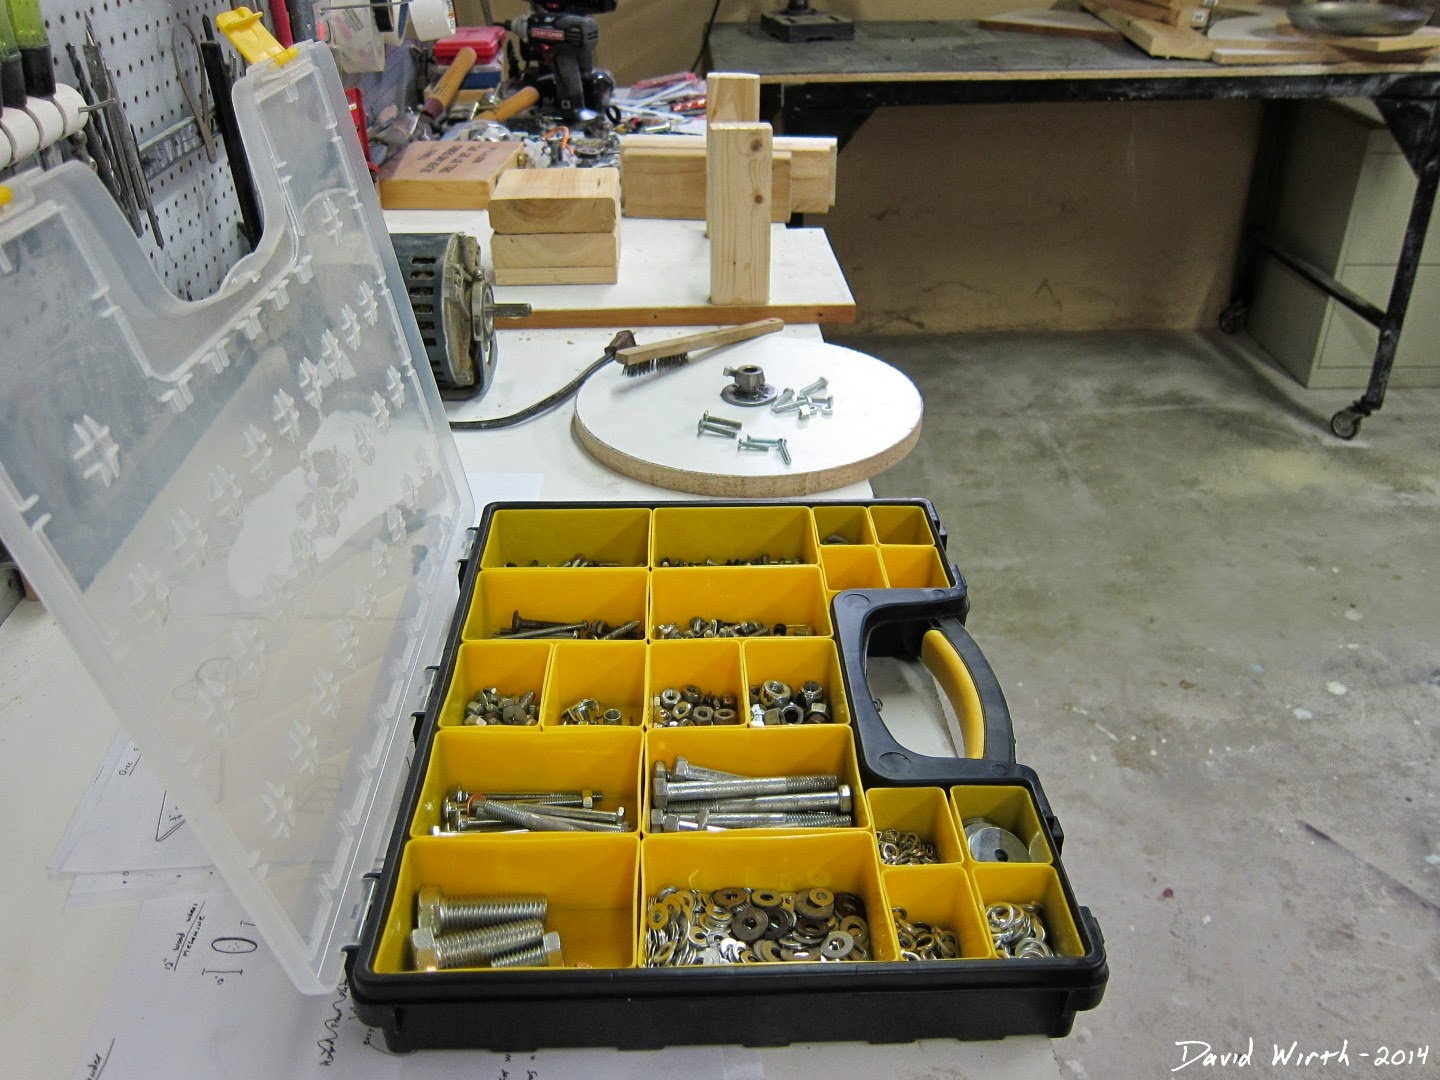 organize bolts, washers, nuts, parts, cases